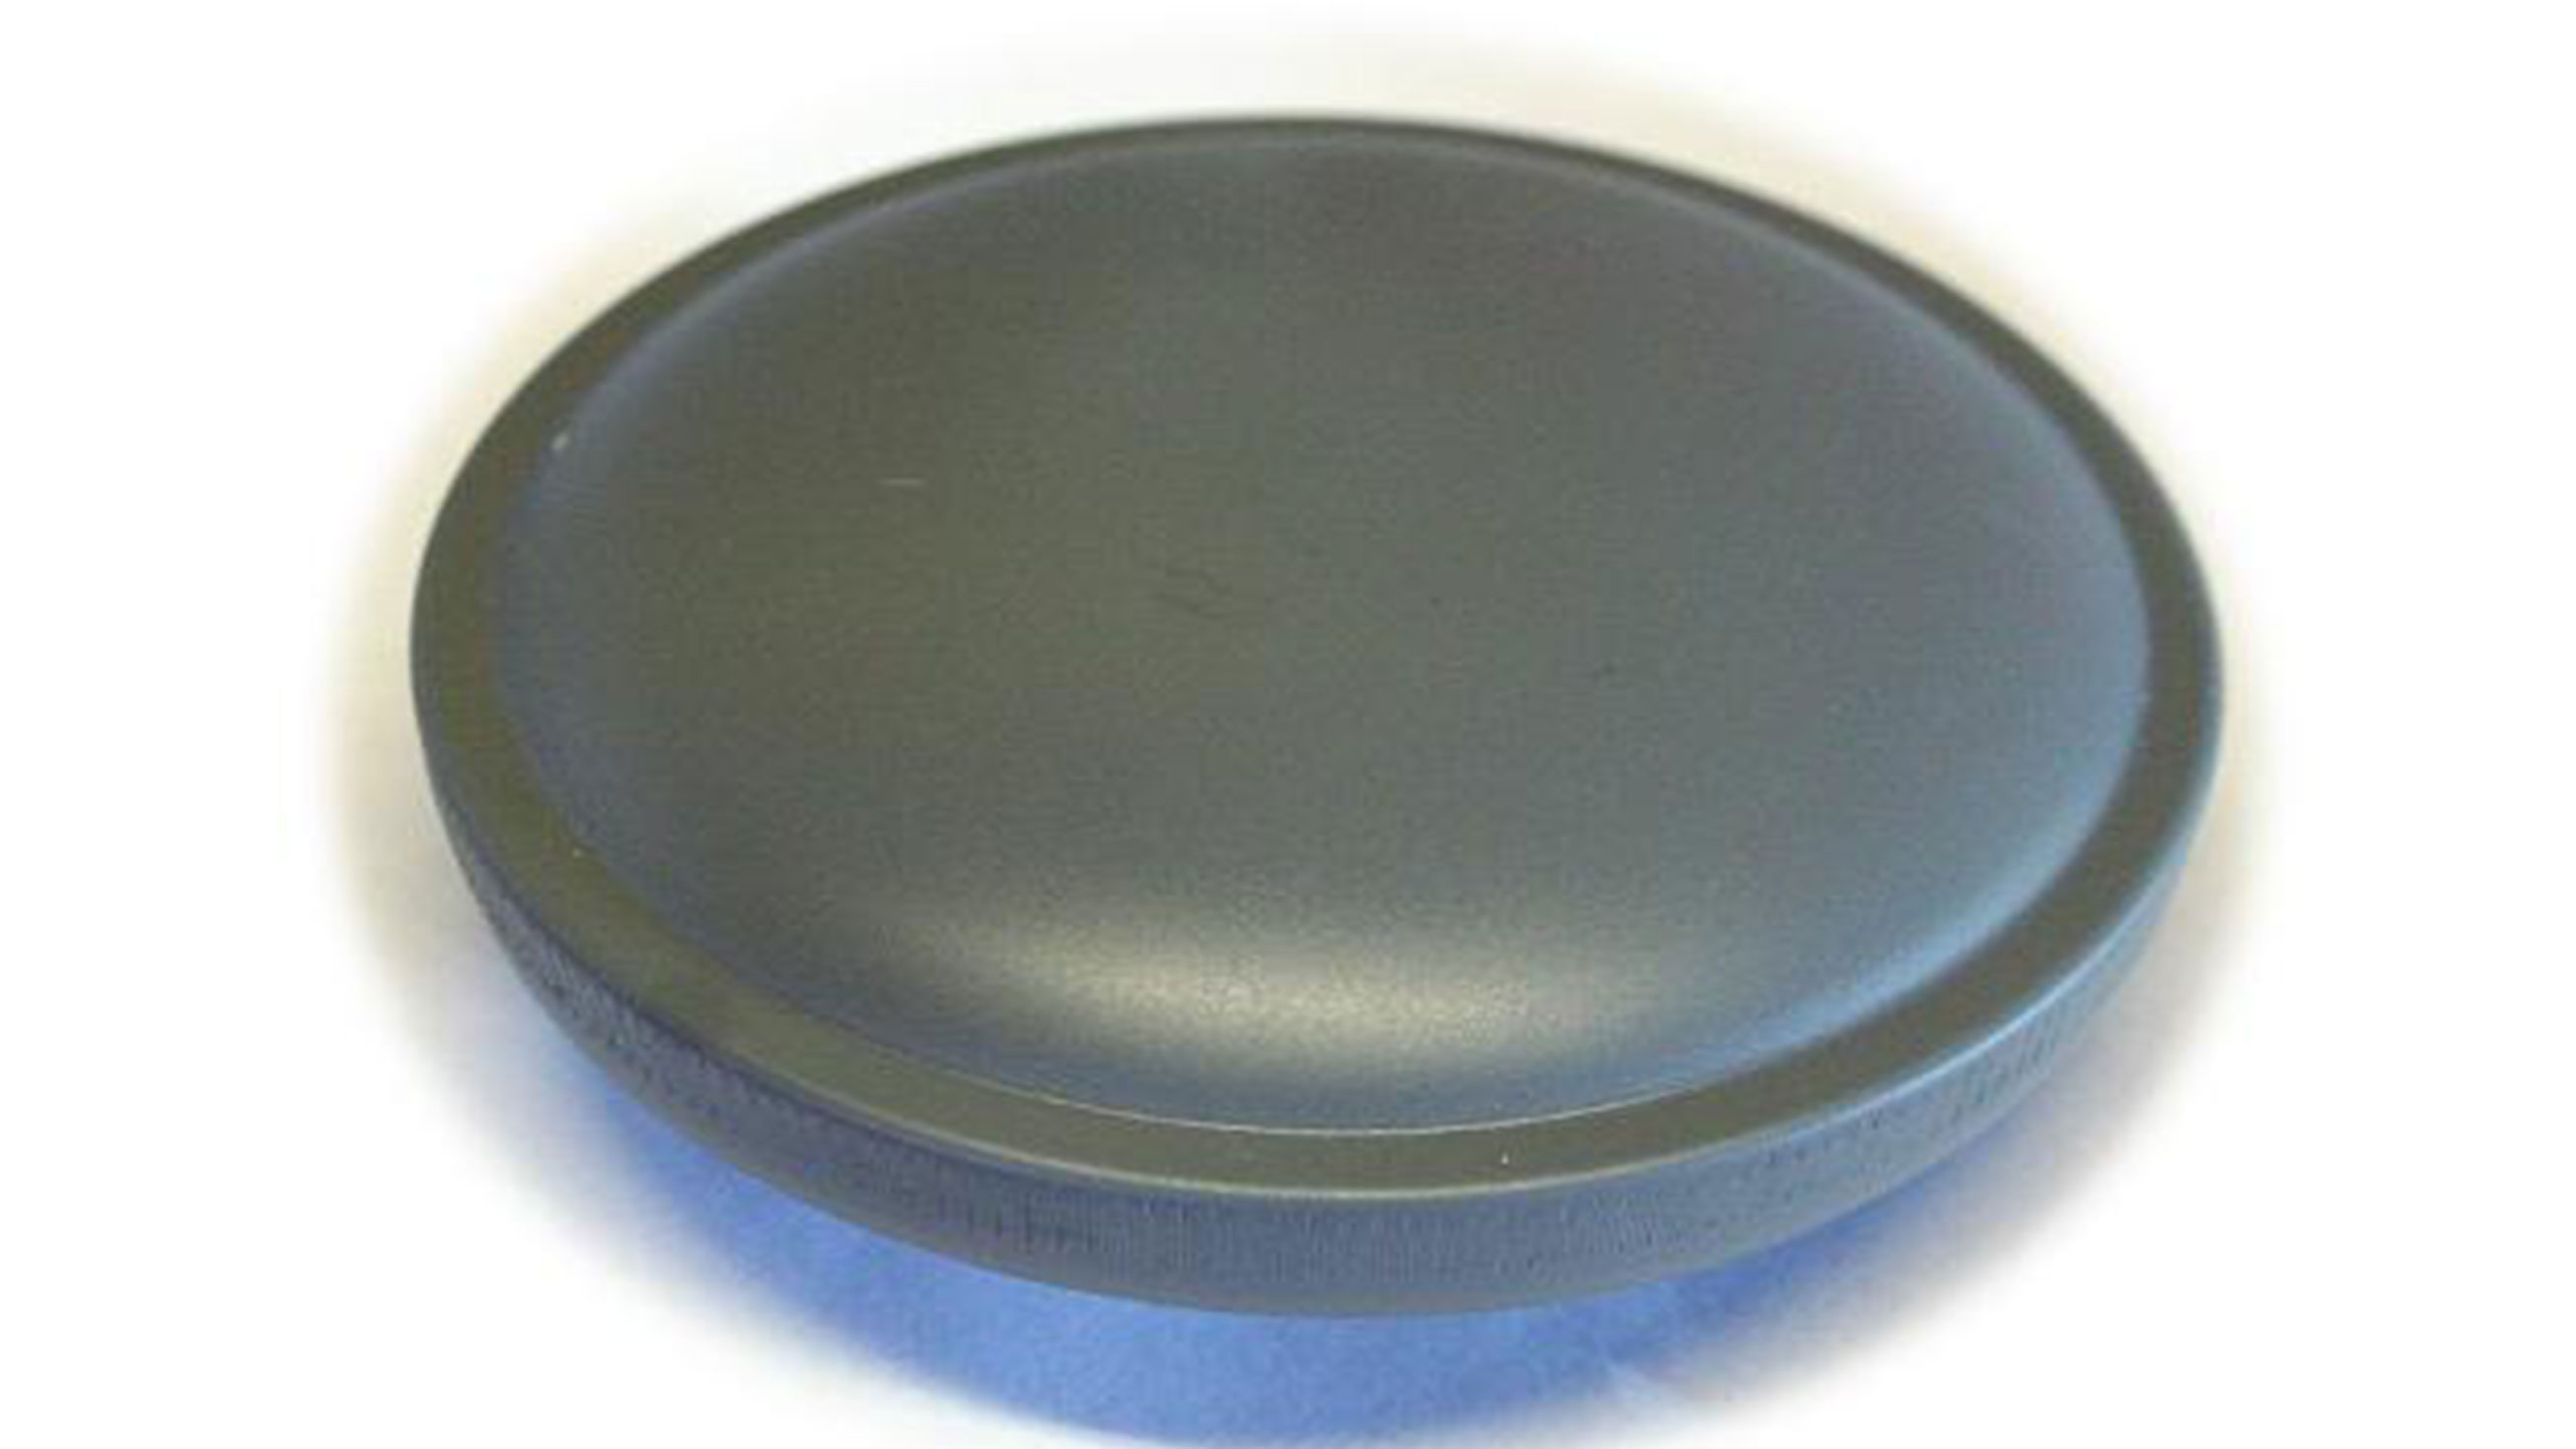 OE Style Fuel Cap - Short Reach, Main and Auxiliary, 66-71.5 Ford Bronco